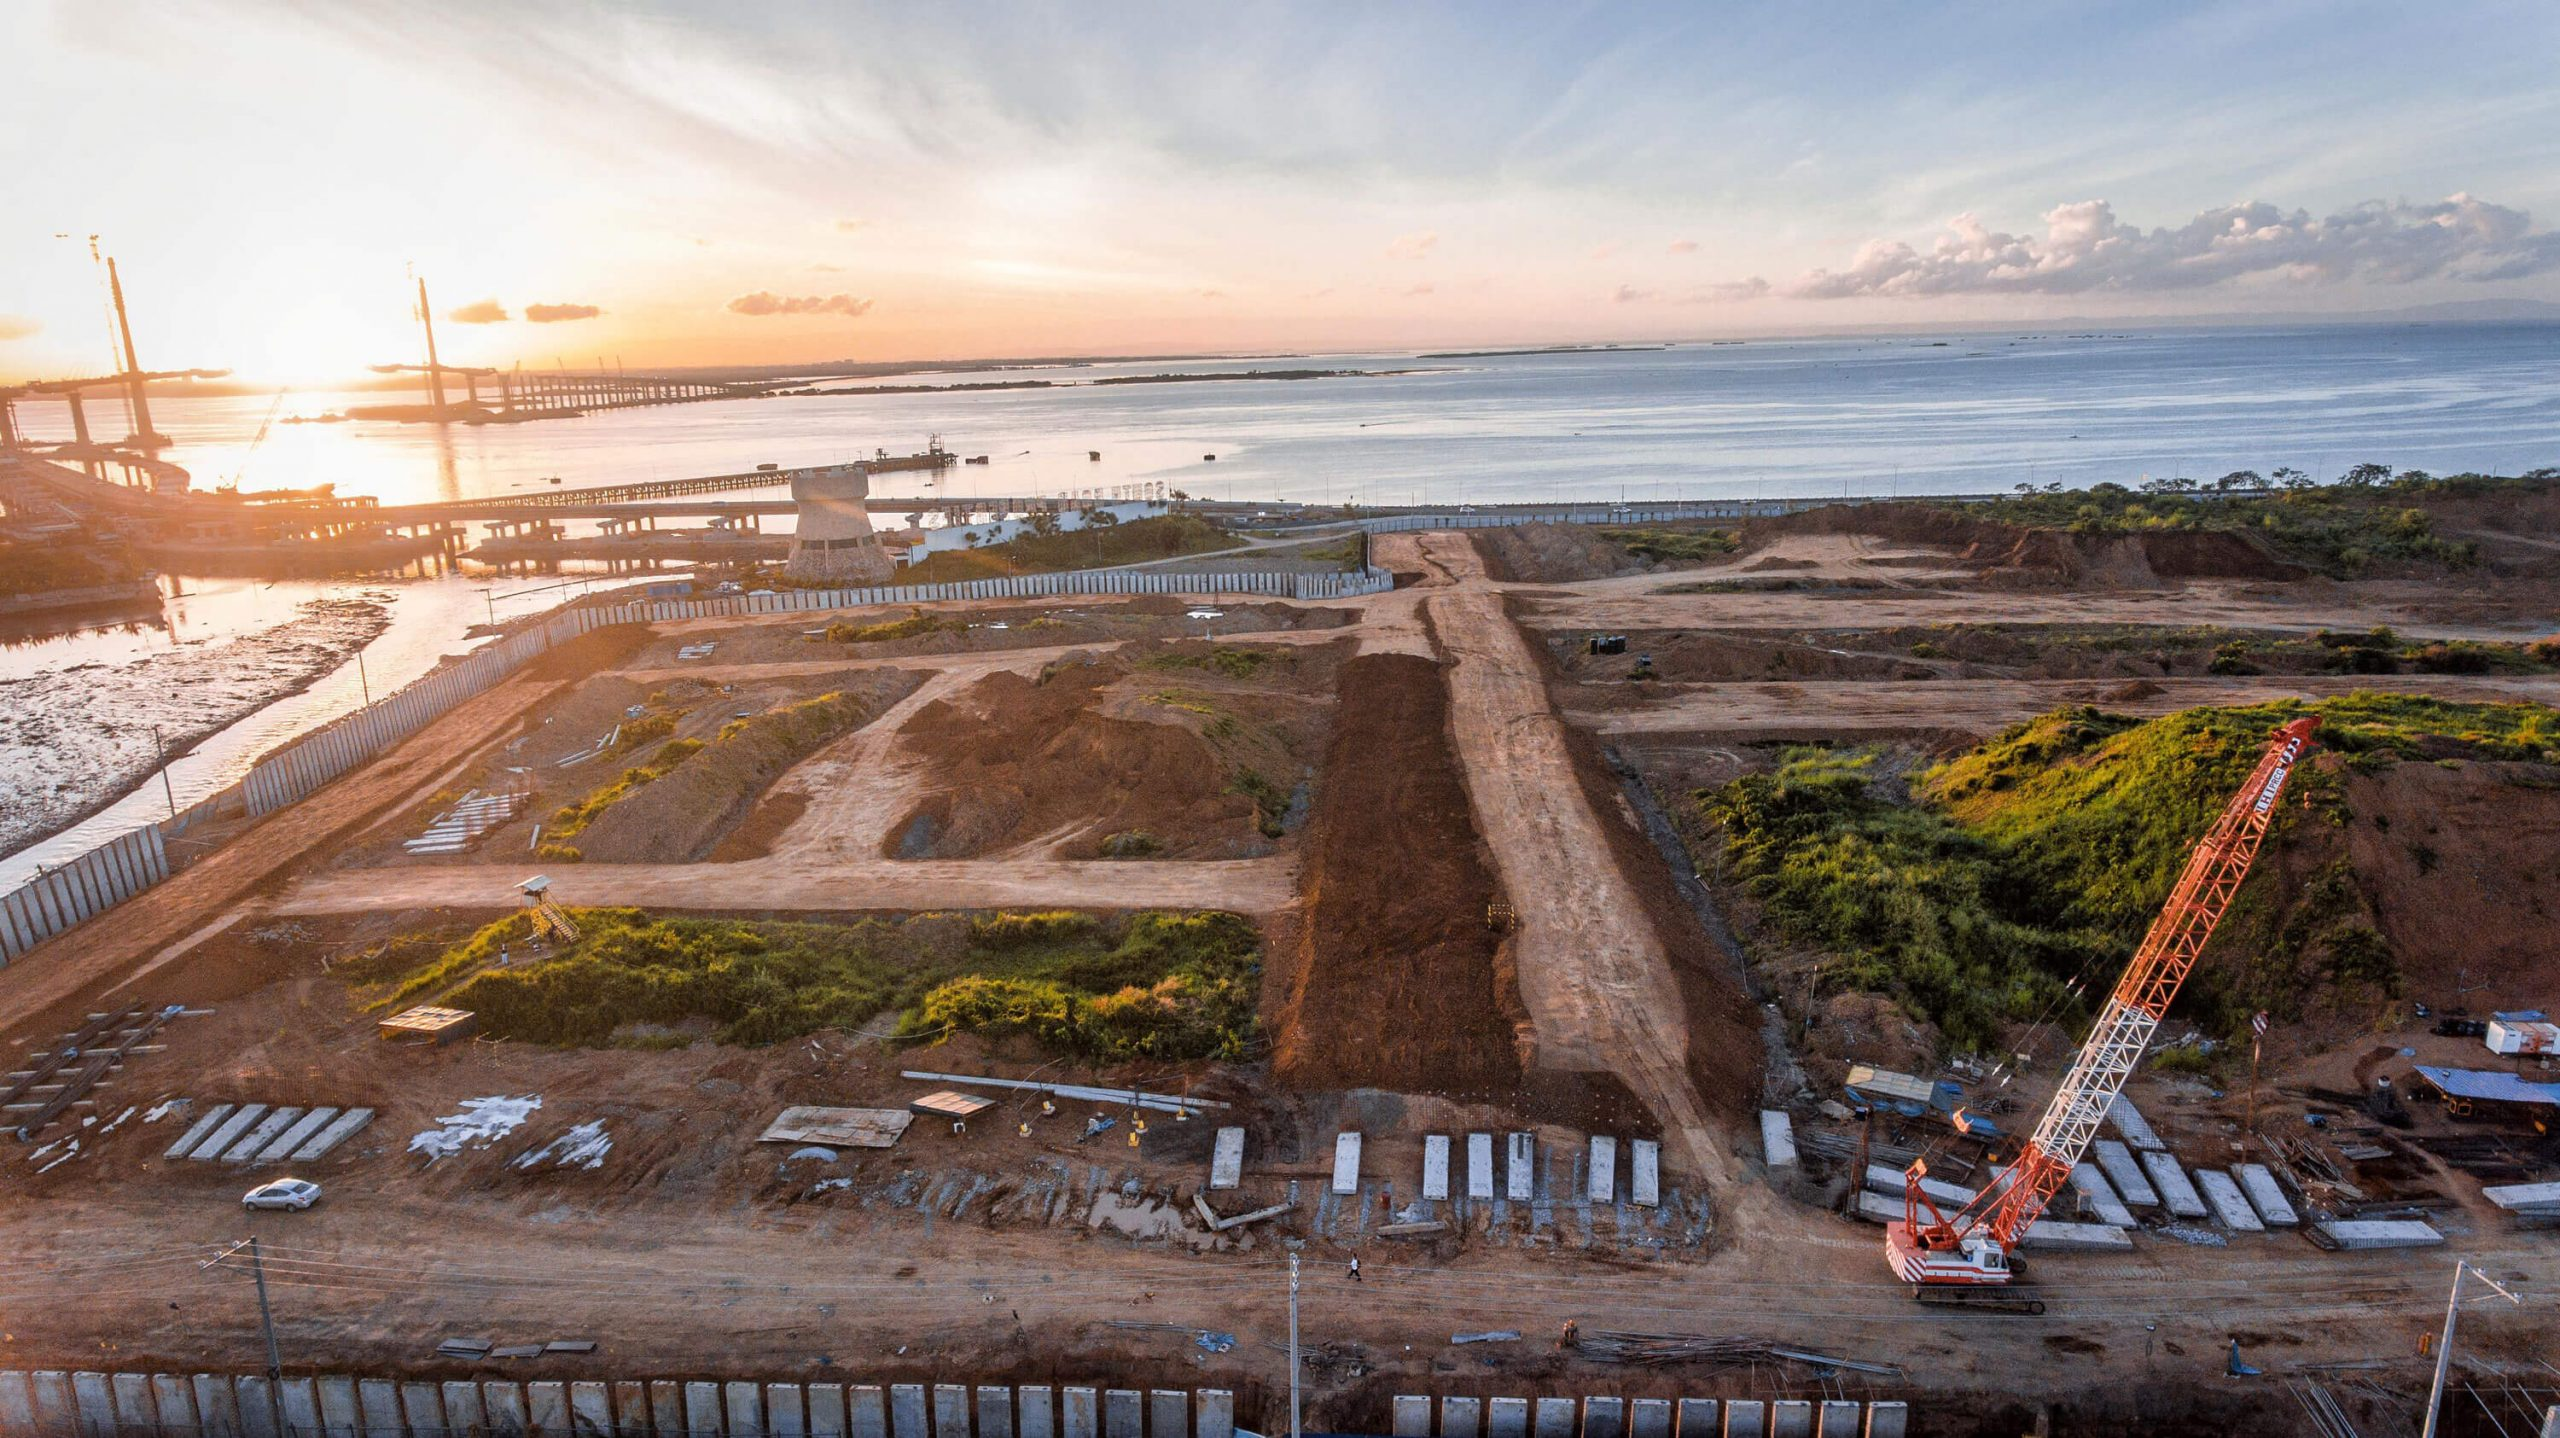 SITE DEVELOPMENT PROGRESS. Construction progress of the commercial lot offering, District Square, which is envisioned to be Cebu's prime waterside address and home to progressive office, hotel, and other commercial developments.